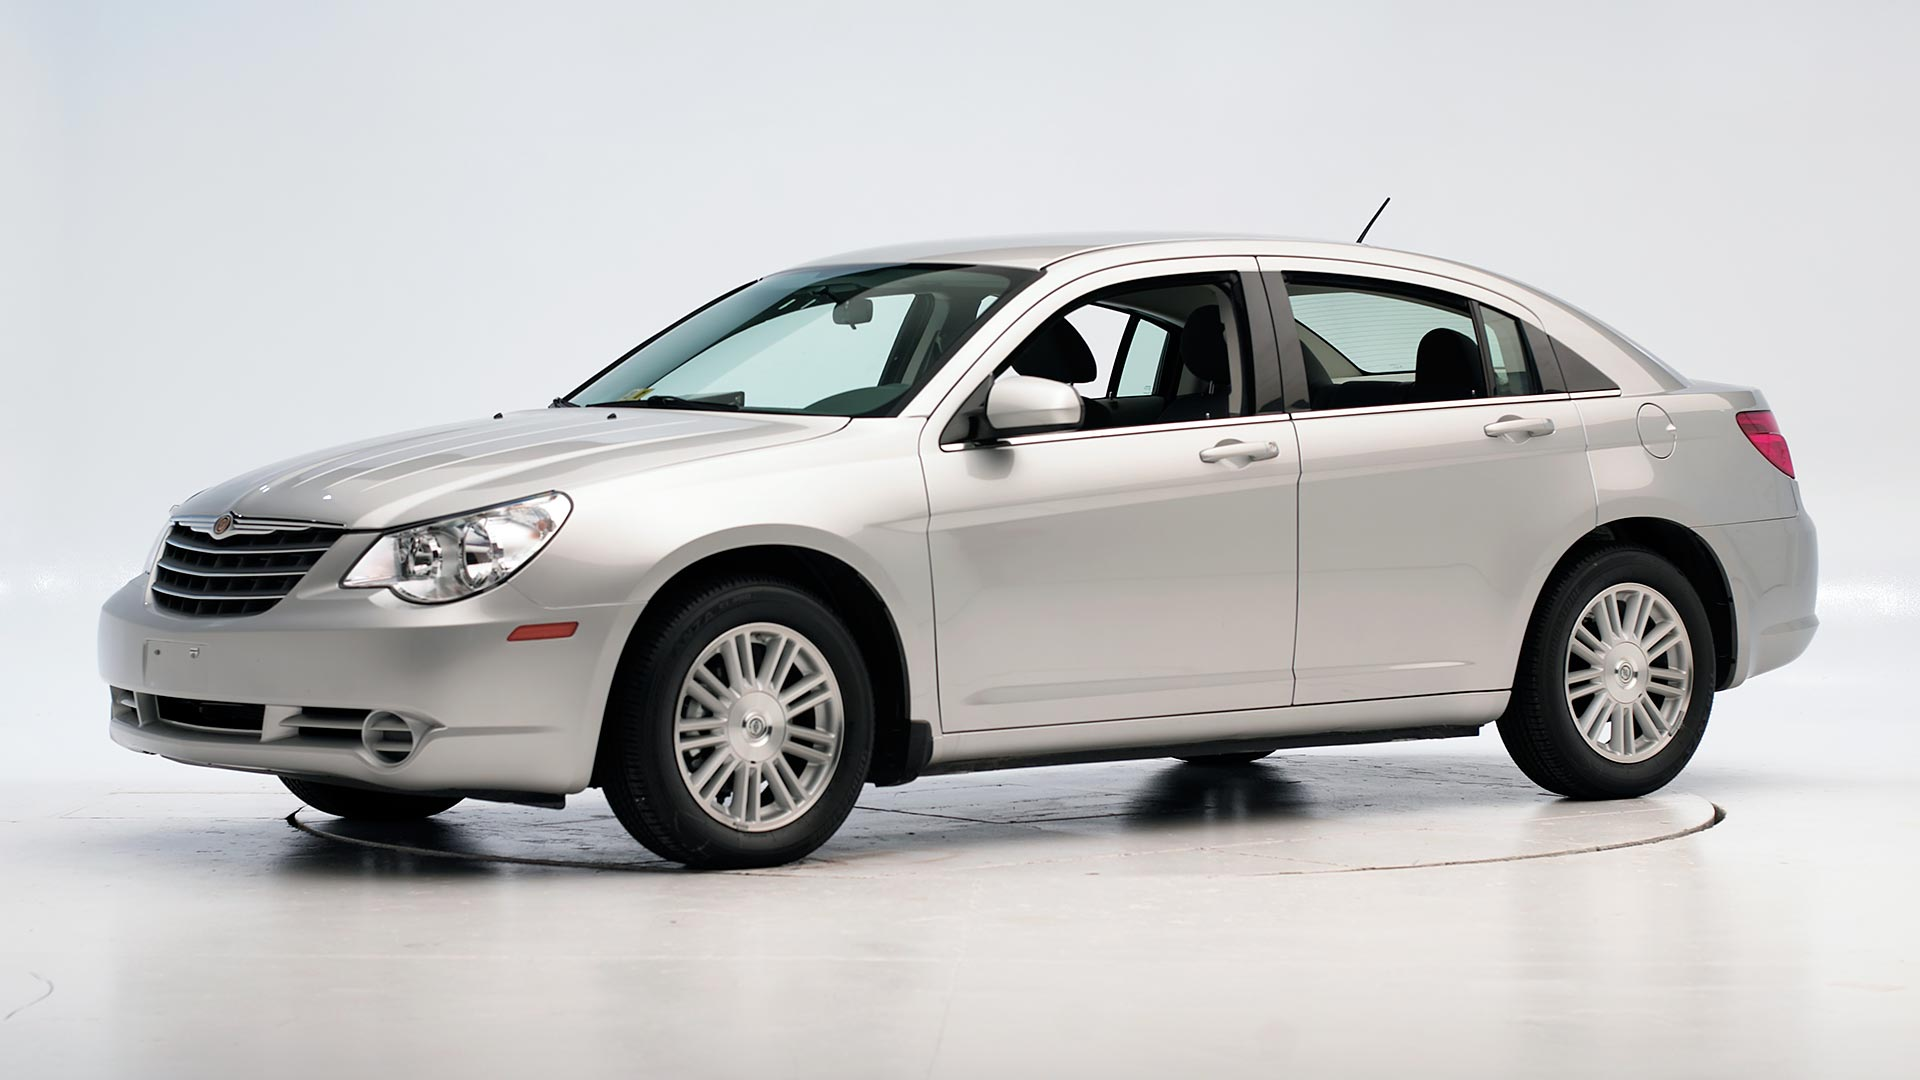 2007 Chrysler Sebring 4-door sedan